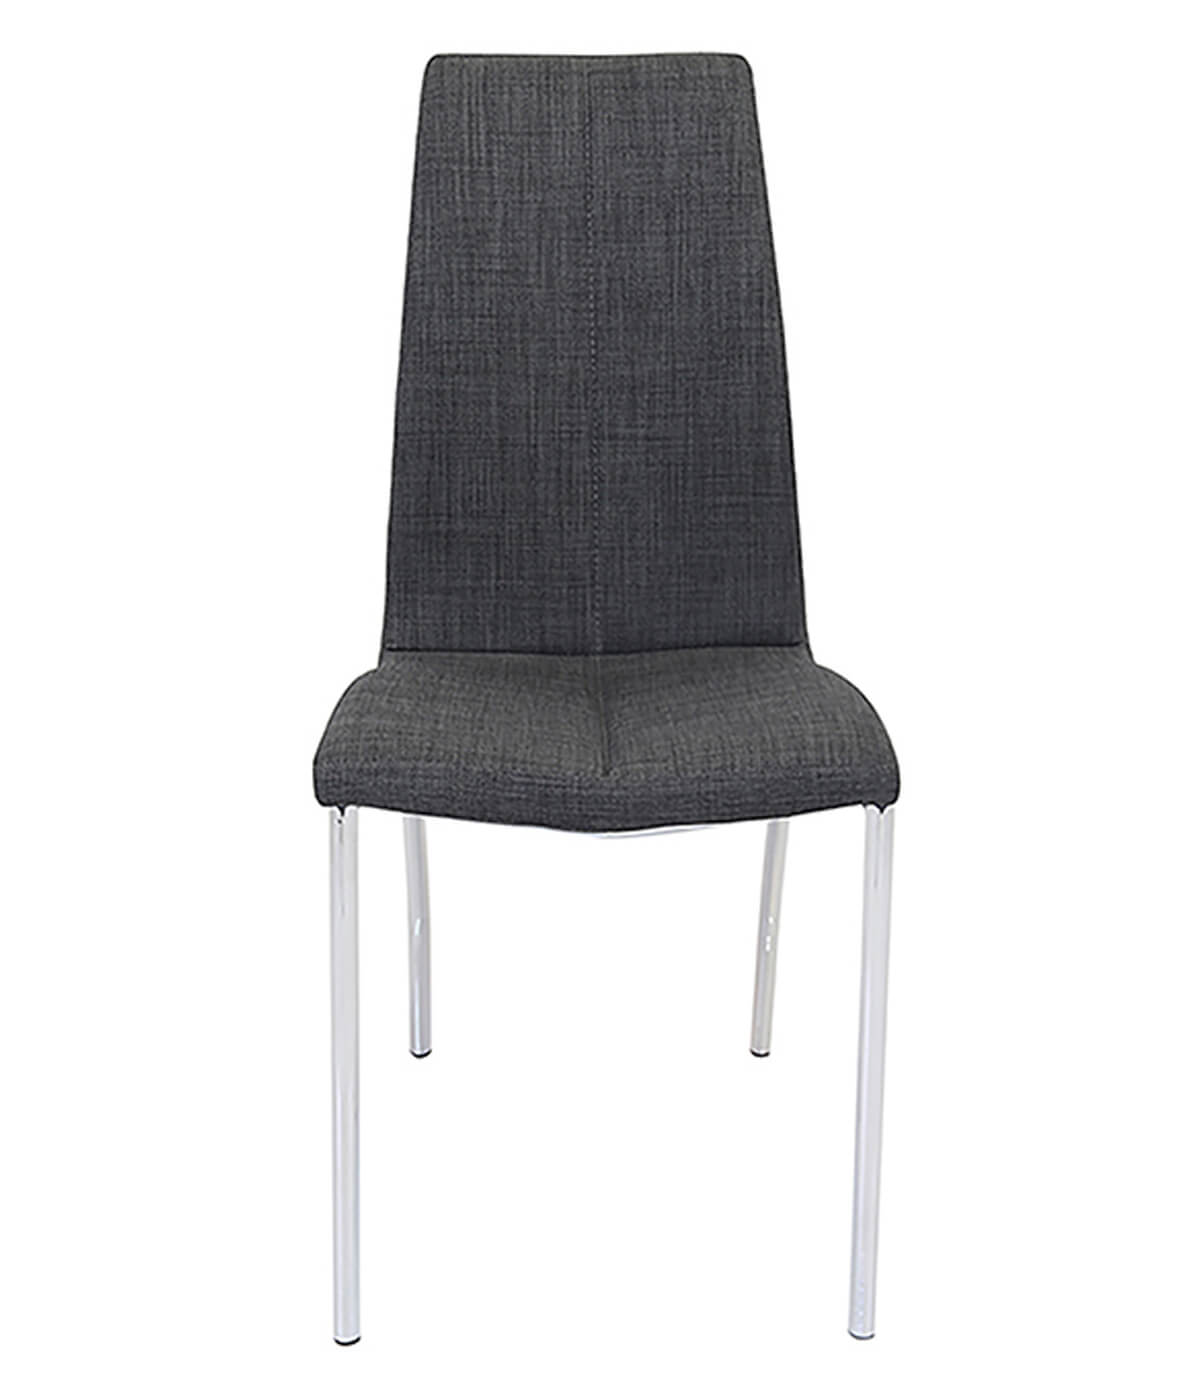 Boston Faux Leather Modern Dining Chair (Charcoal)